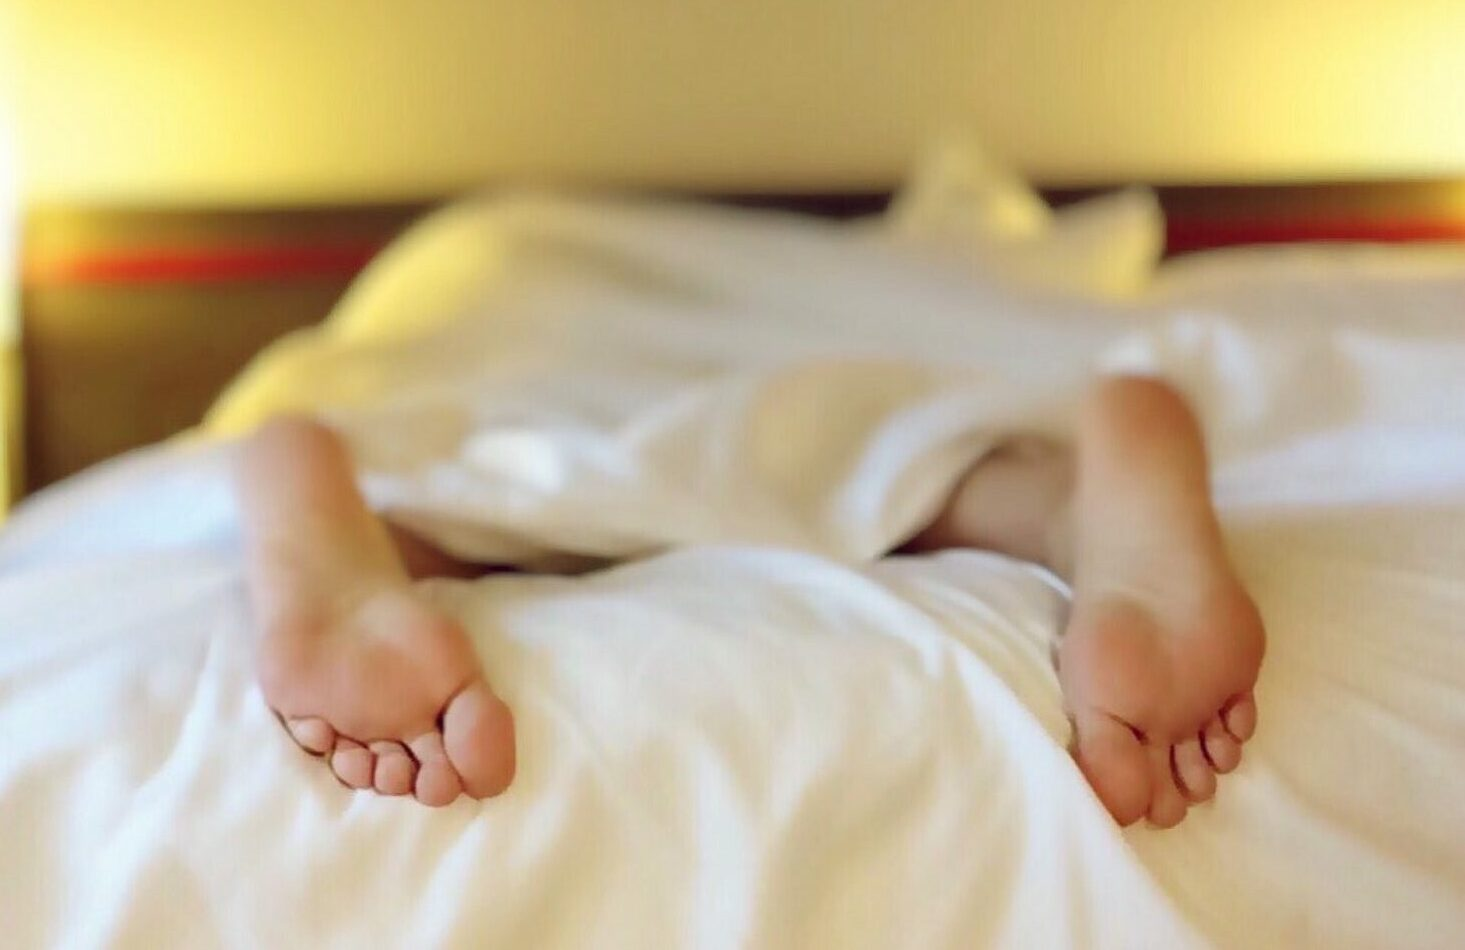 Feet poking out of bed